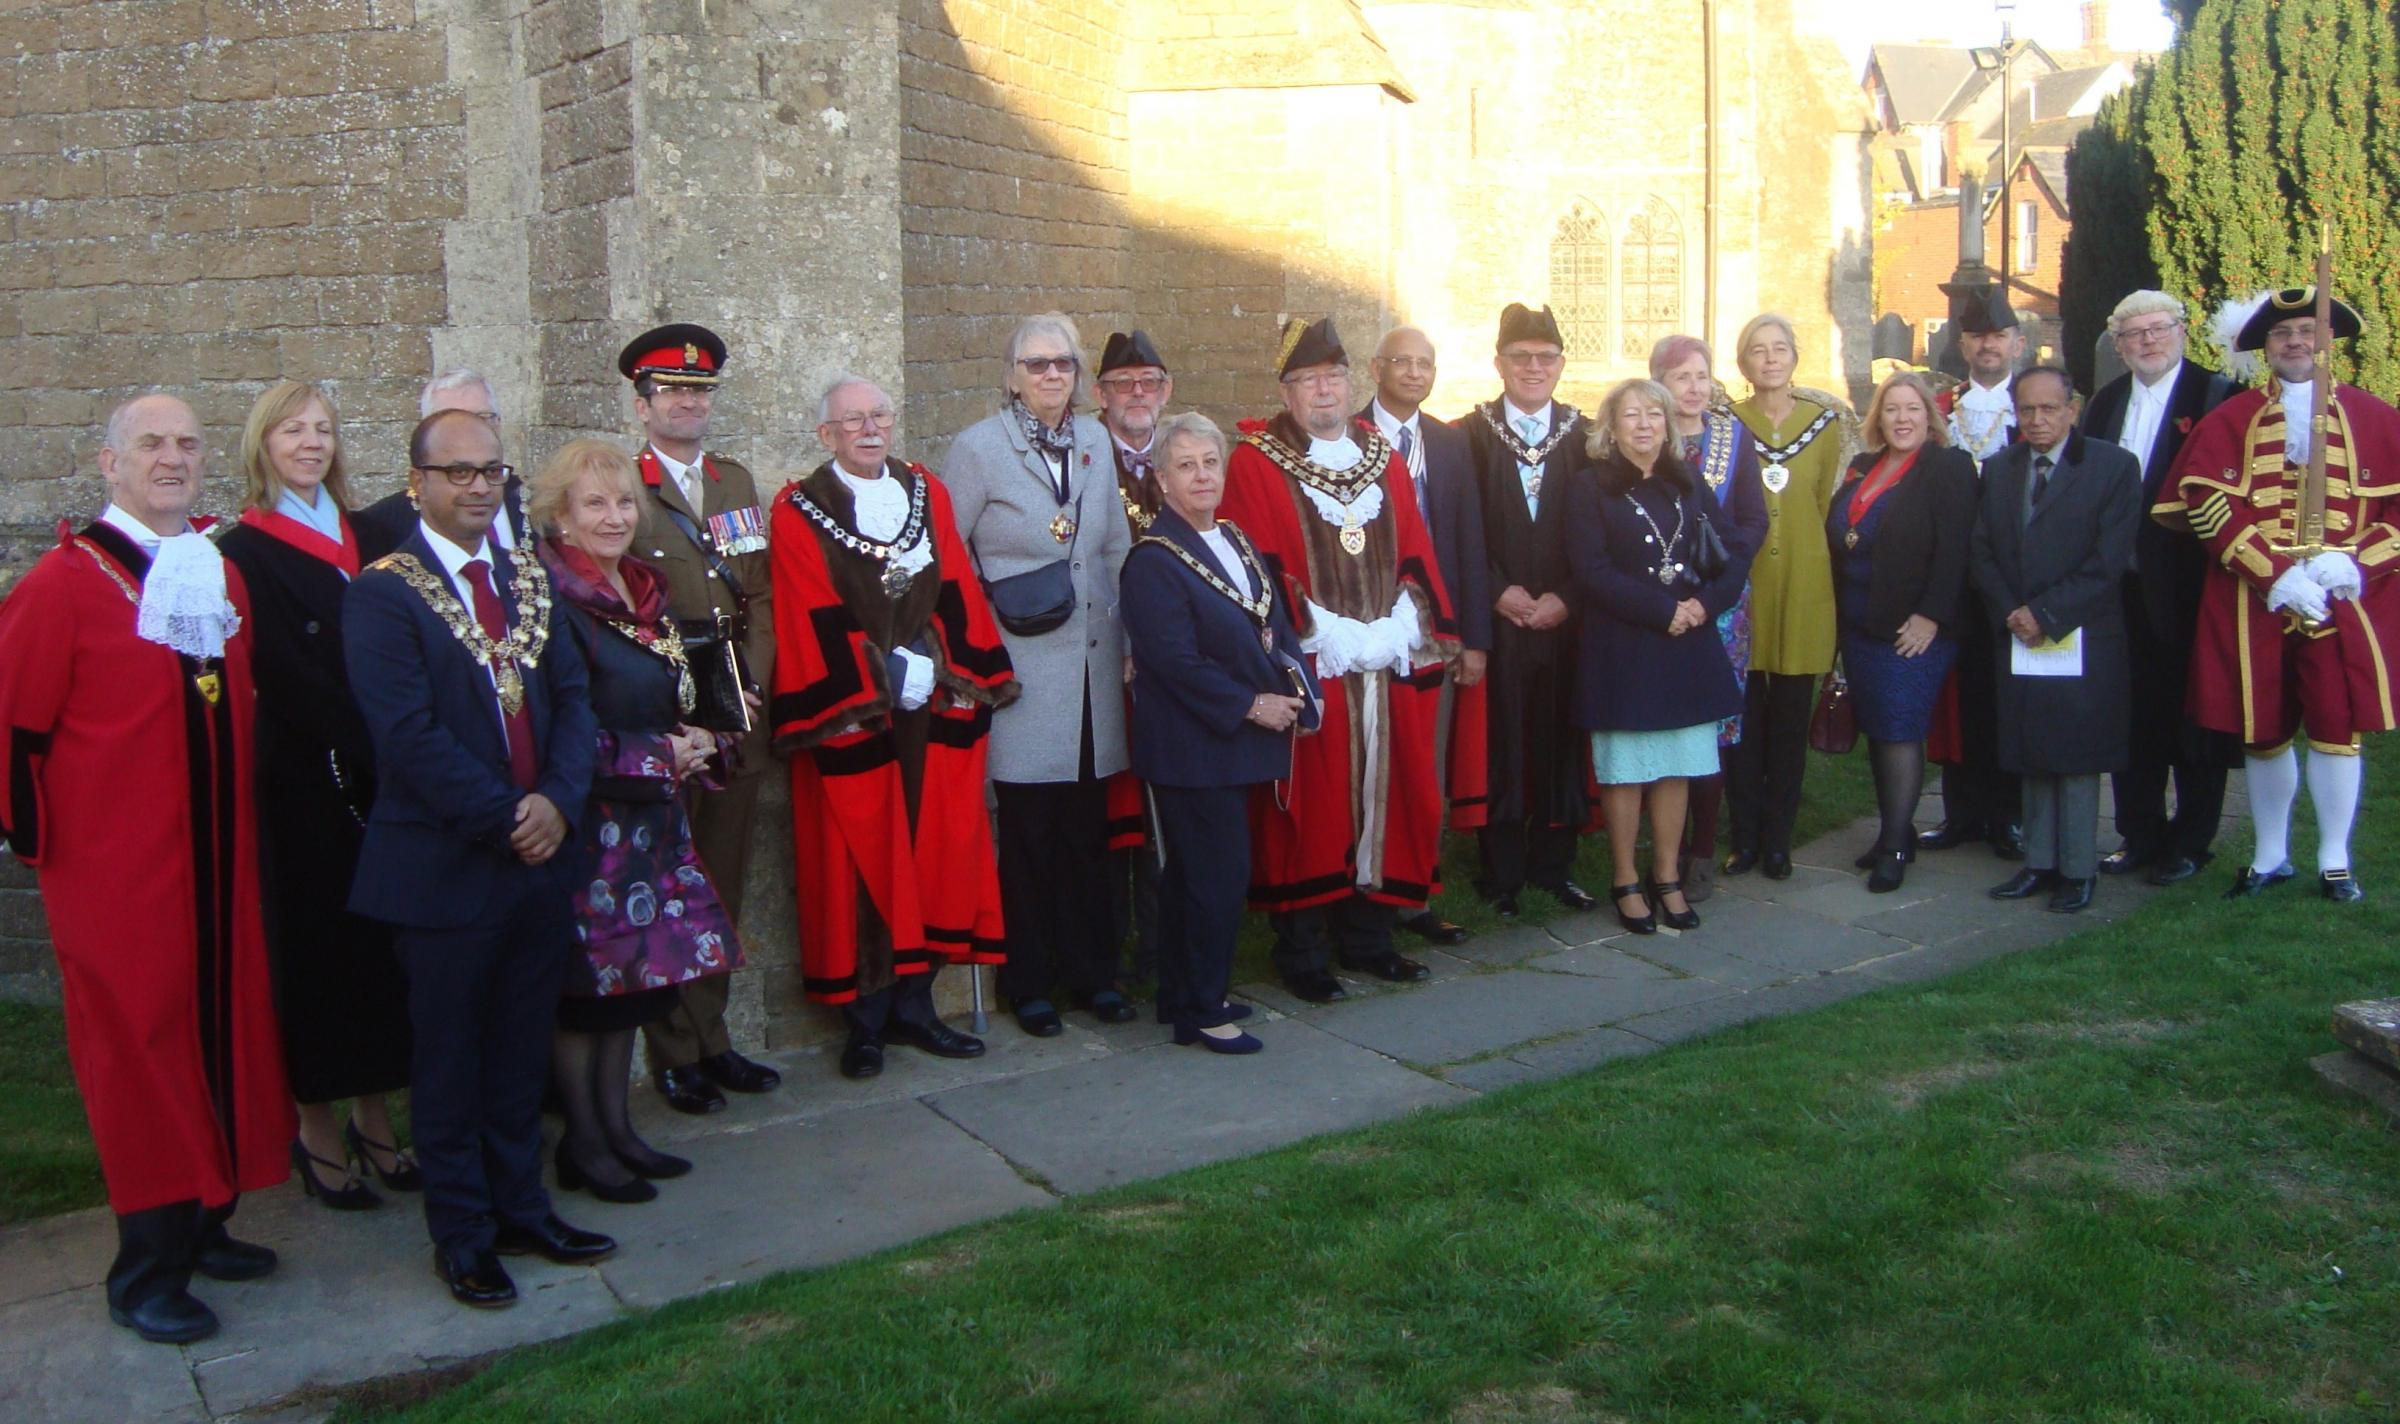 Guests at the Royal Wootton Bassett civic service